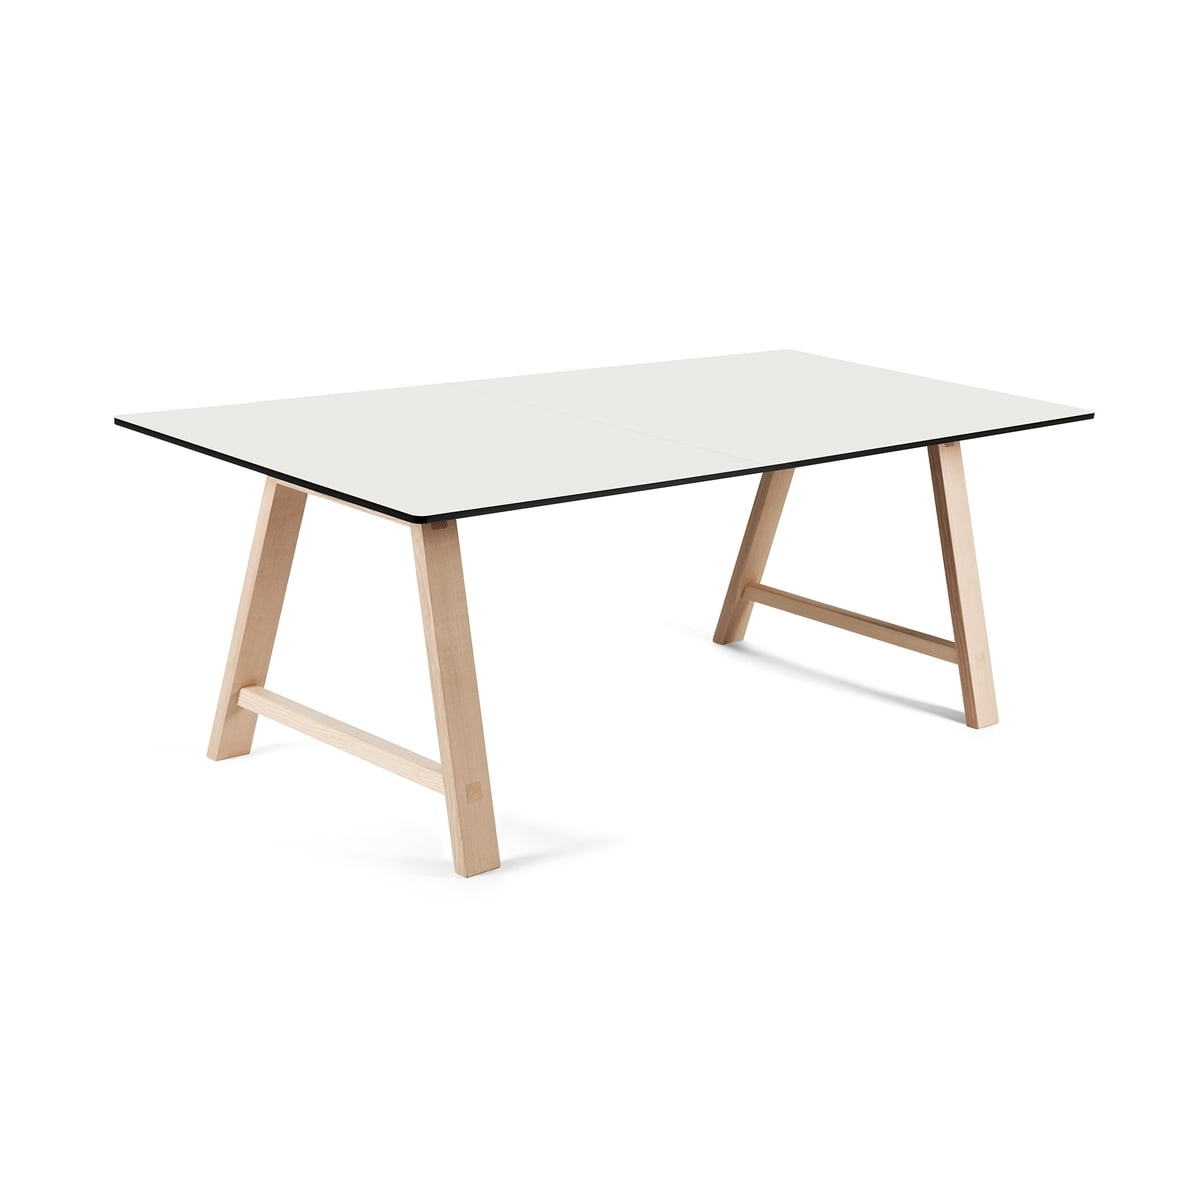 2017 Lassen Extension Rectangle Dining Tables Pertaining To Andersen Furniture – T1 Ausziehtisch 160Cm, Eiche Geseift / Laminat Weiß (View 21 of 25)